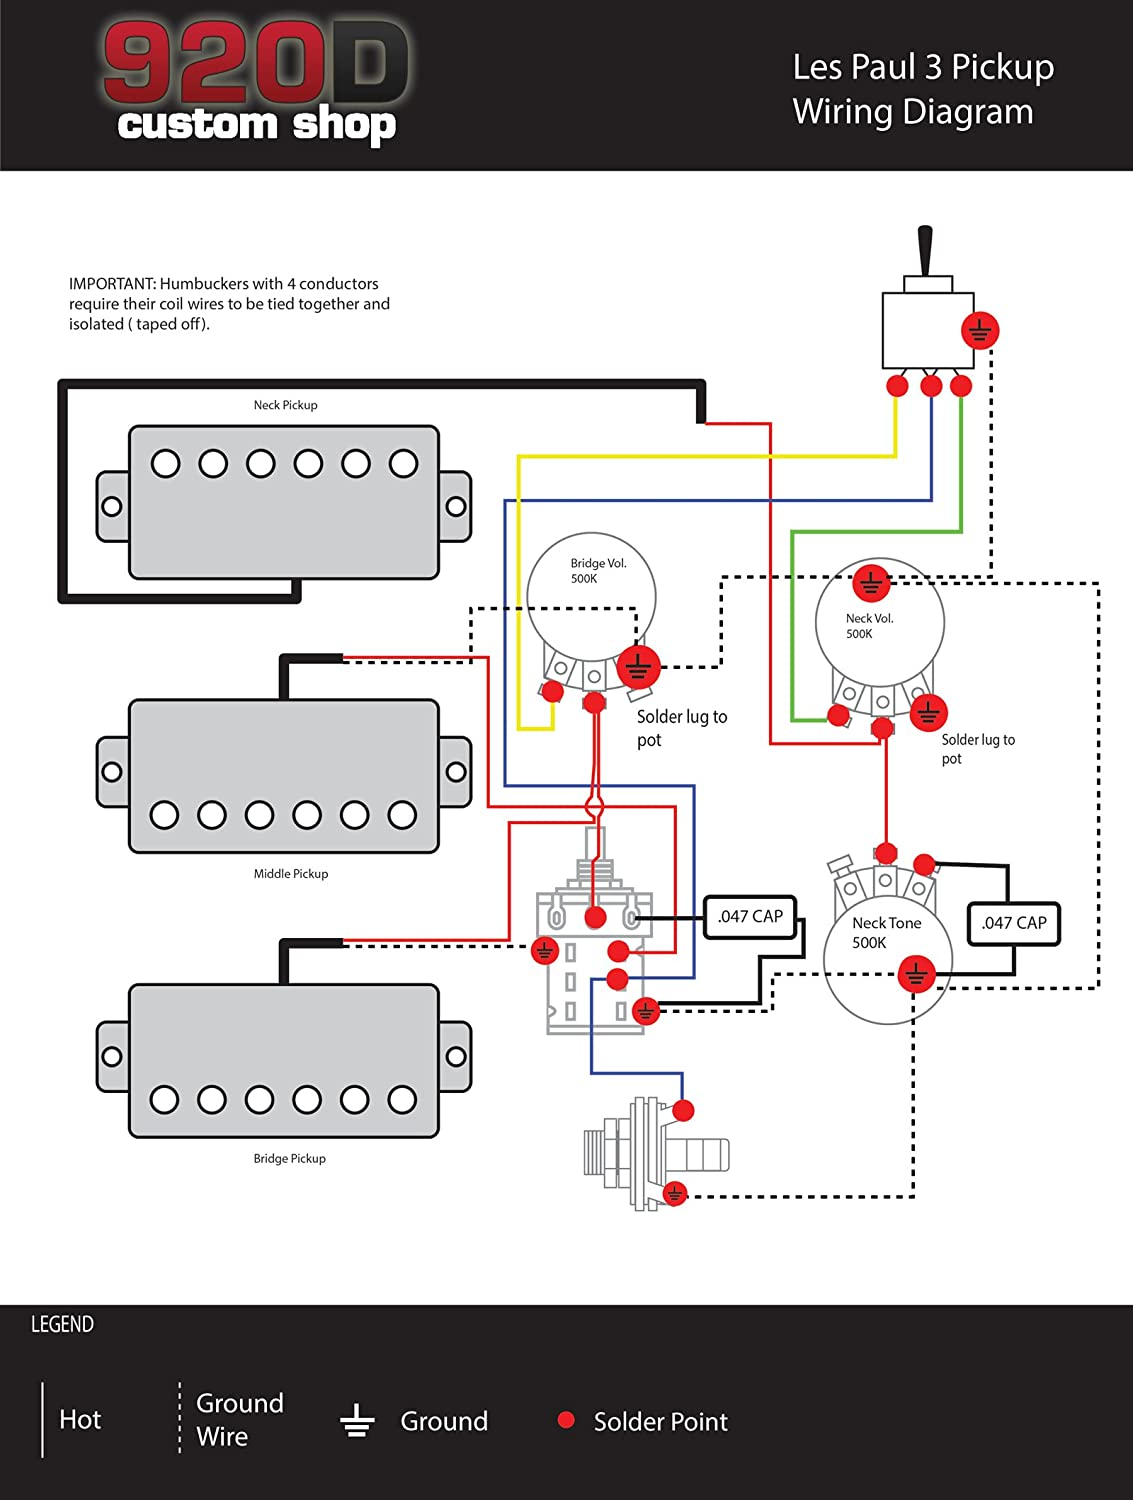 Sensational Wiring Diagram Besides Les Paul Wiring Kit On Vintage Gibson Guitar Wiring Cloud Nuvitbieswglorg